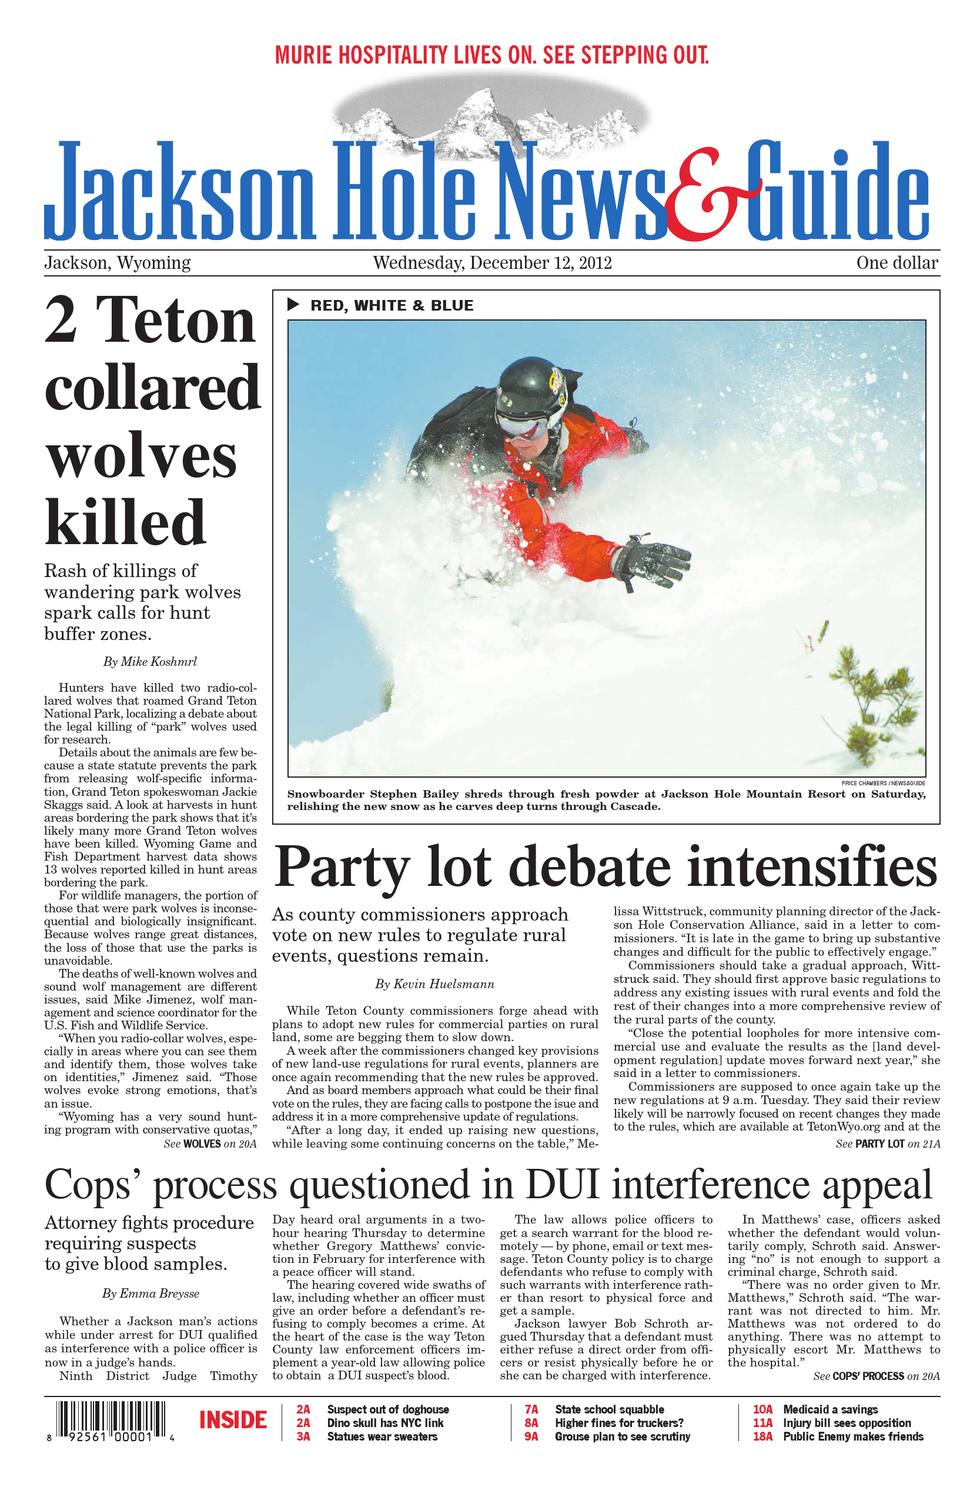 Jackson Hole News Guide December 12 2012 by Teton Media Works 2aa8a8661